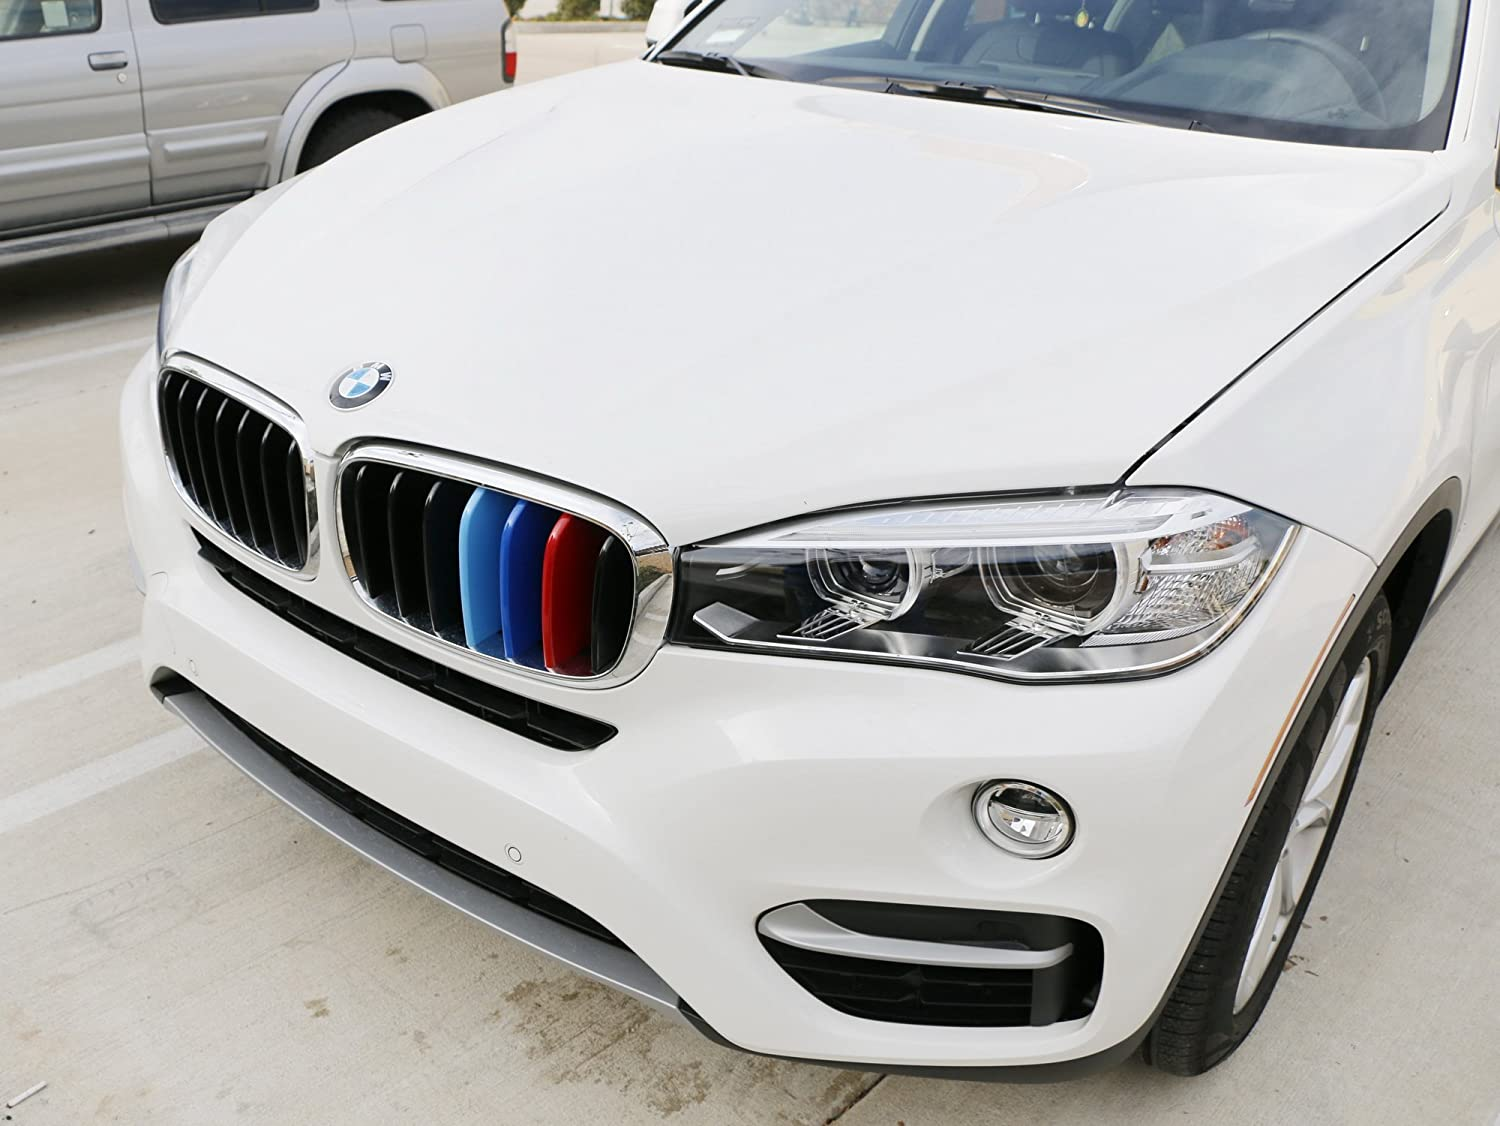 iJDMTOY Exact Fit //////M-Colored Grille Insert Trims For 1999-2001 BMW E46 Pre-LCI 3 Series 4-Door Sedan 320i 323i 325i 328i 330i with 10-Beam ONLY